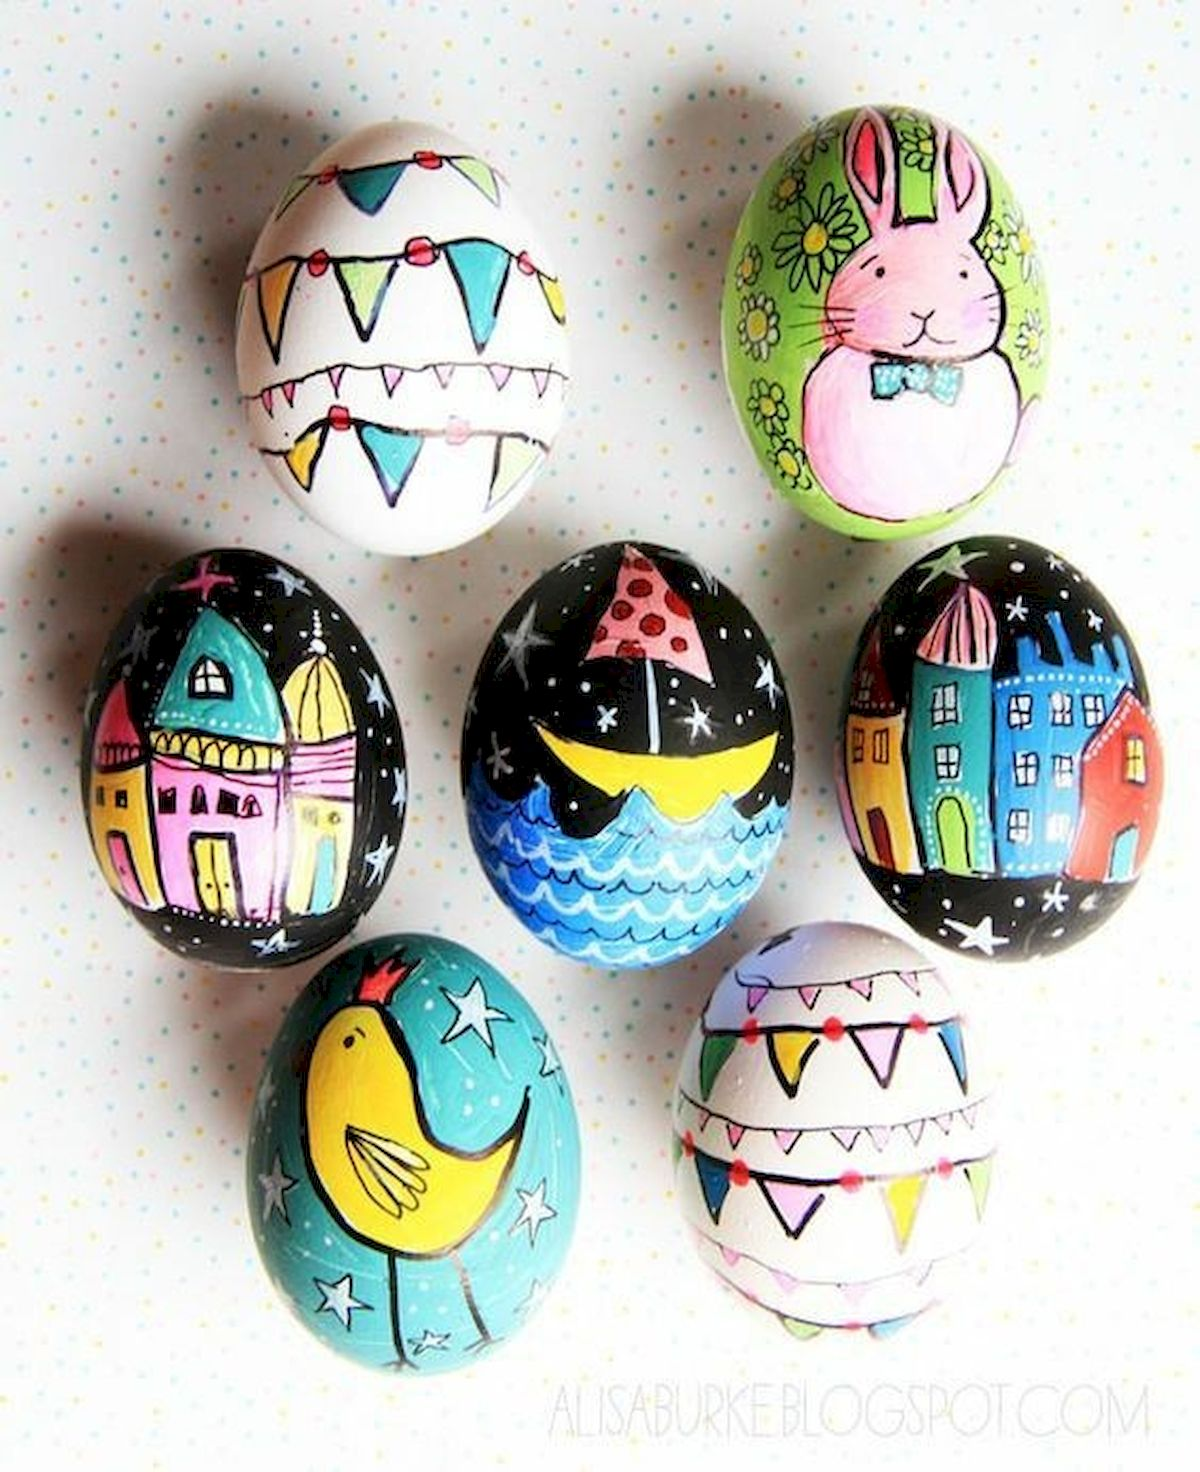 90 Awesome DIY Easter Eggs Ideas (43)